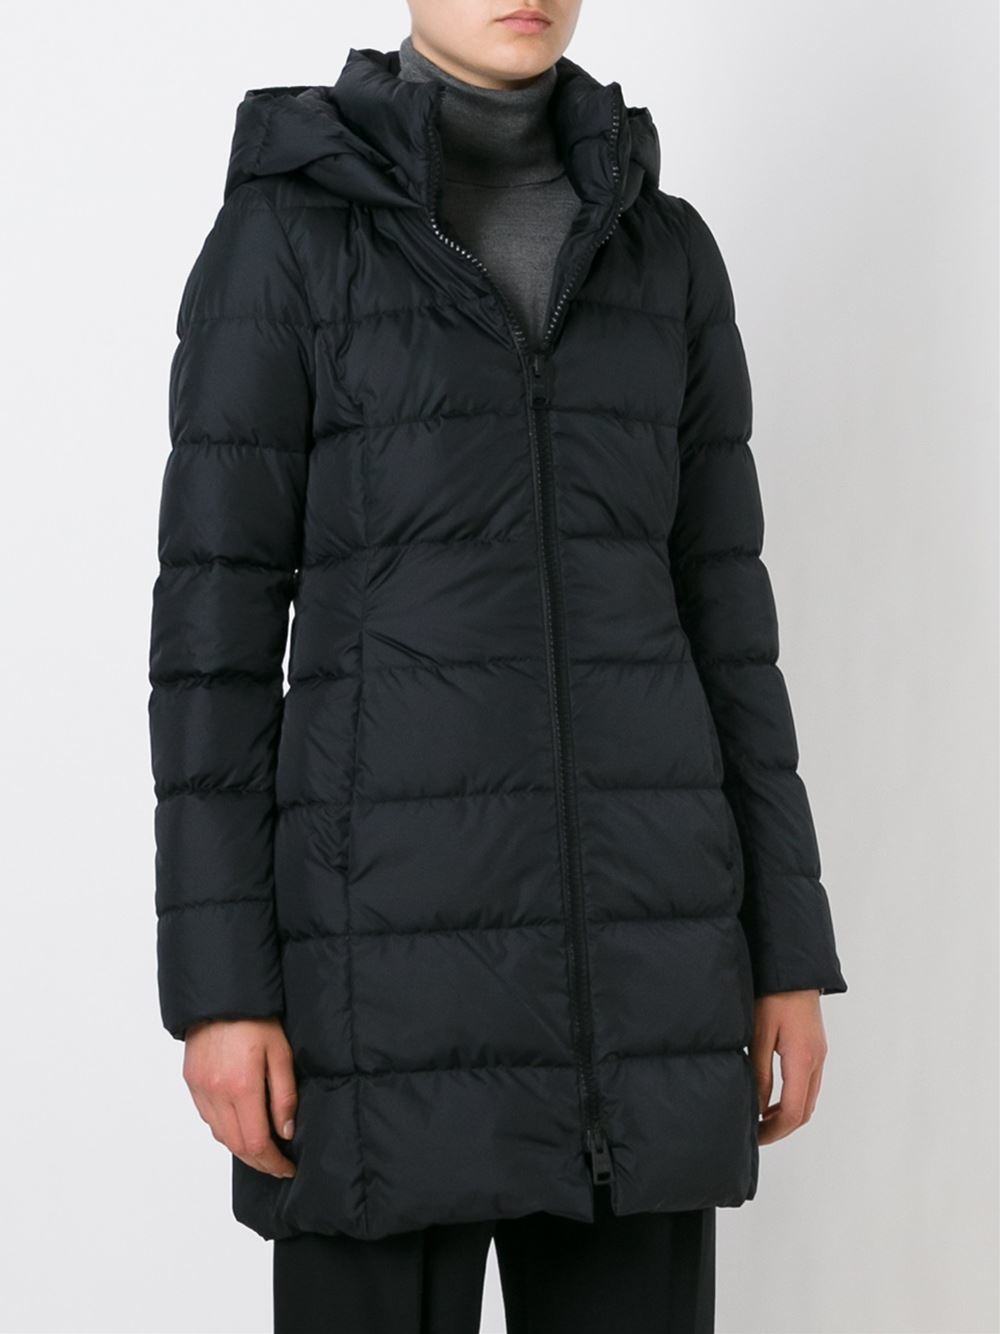 Find great deals on eBay for mens hooded winter coats. Shop with confidence. Skip to main content. eBay: Shop by category. Shop by category. Enter your search keyword Winter Mens Cotton Padded Jacket Parka Hooded Outwear With Velvet Down Coat New. Brand New. $ Buy It .